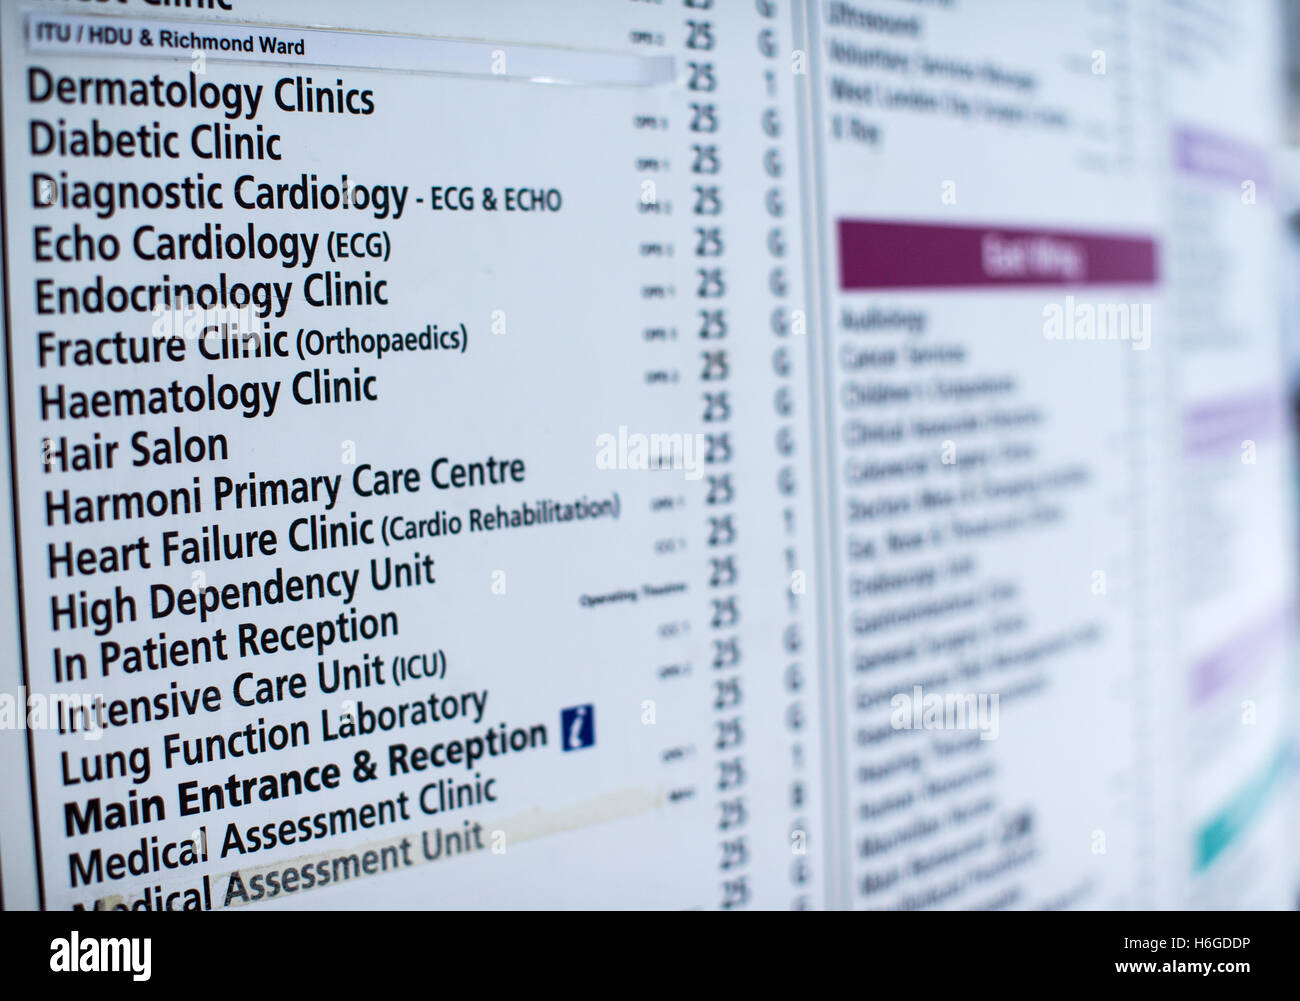 Adult Clinic, Pushkino: services, address and reviews 18